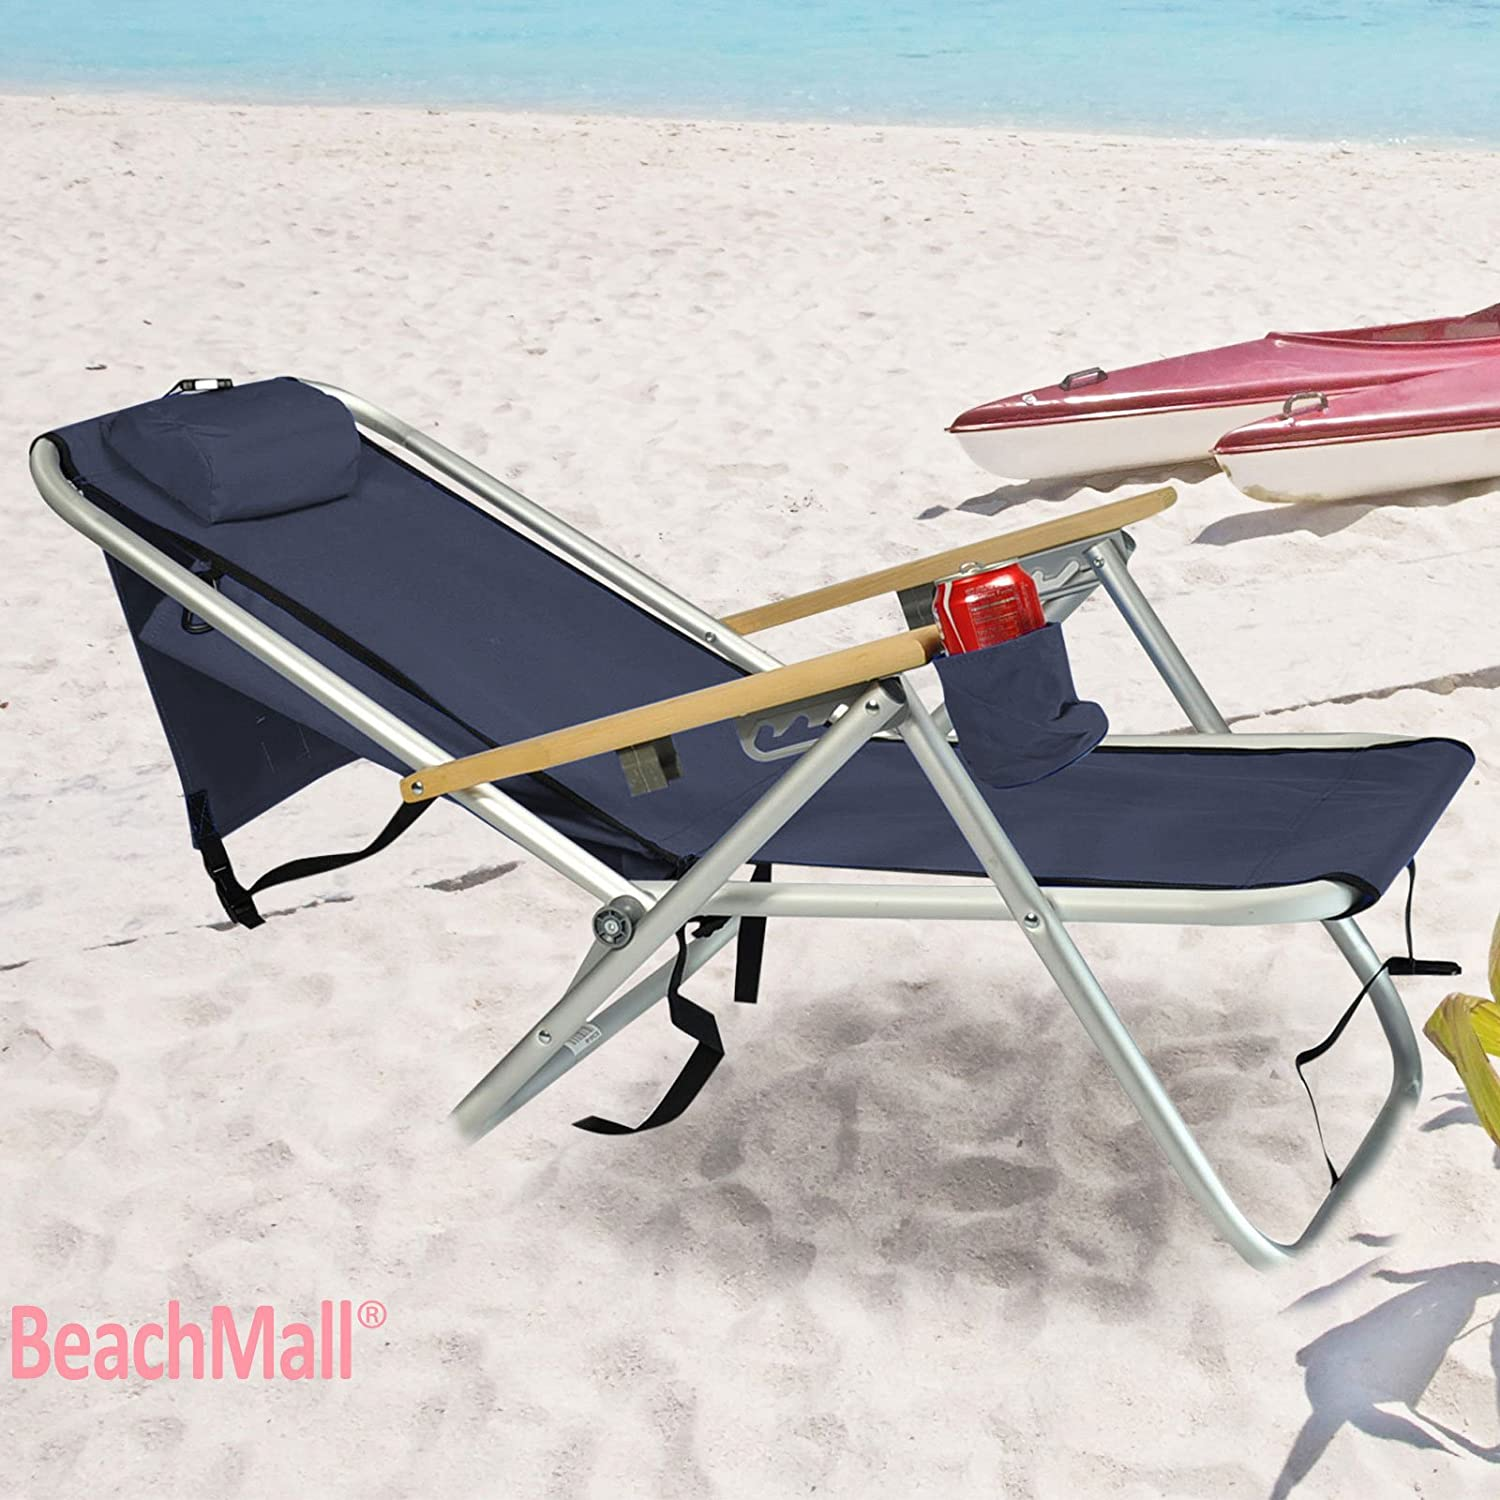 Best Lightweight Beach Chairs For Summer 2015 2016 on Flipboard